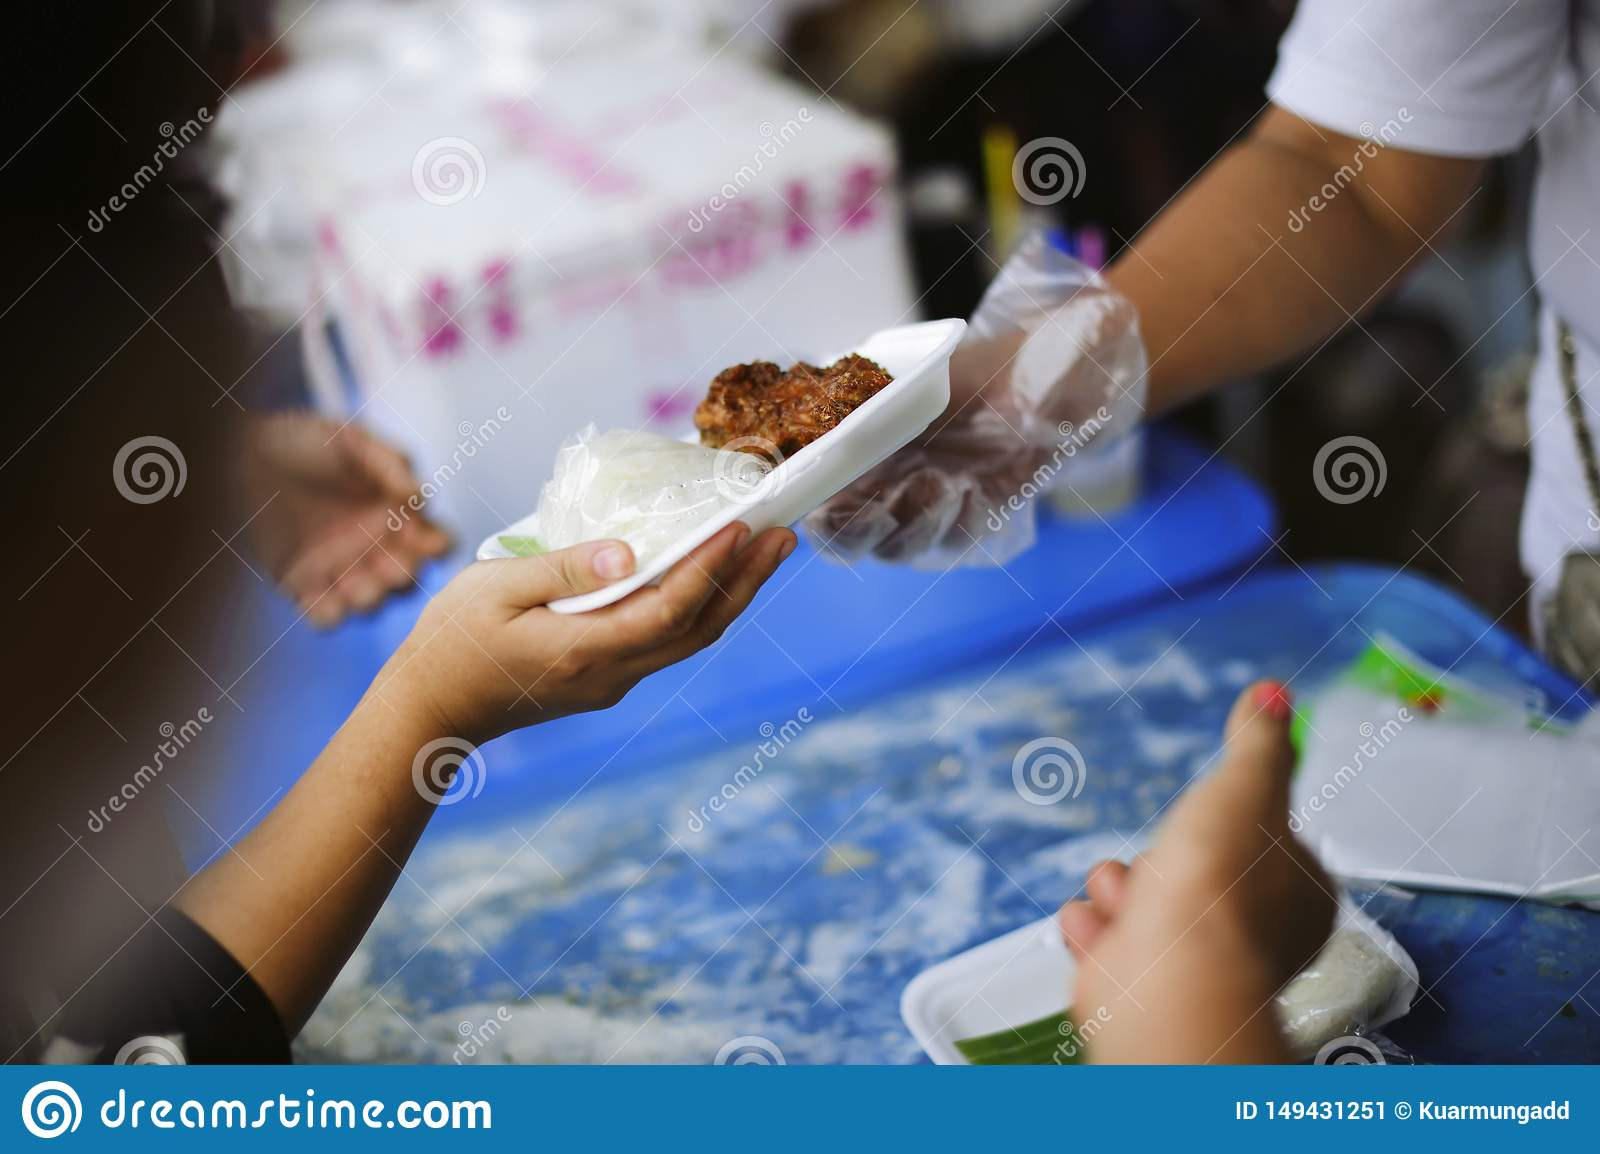 Charity food is the hope of the poor who have no money : concept of begging food : Donate food to people in society : Volunteers